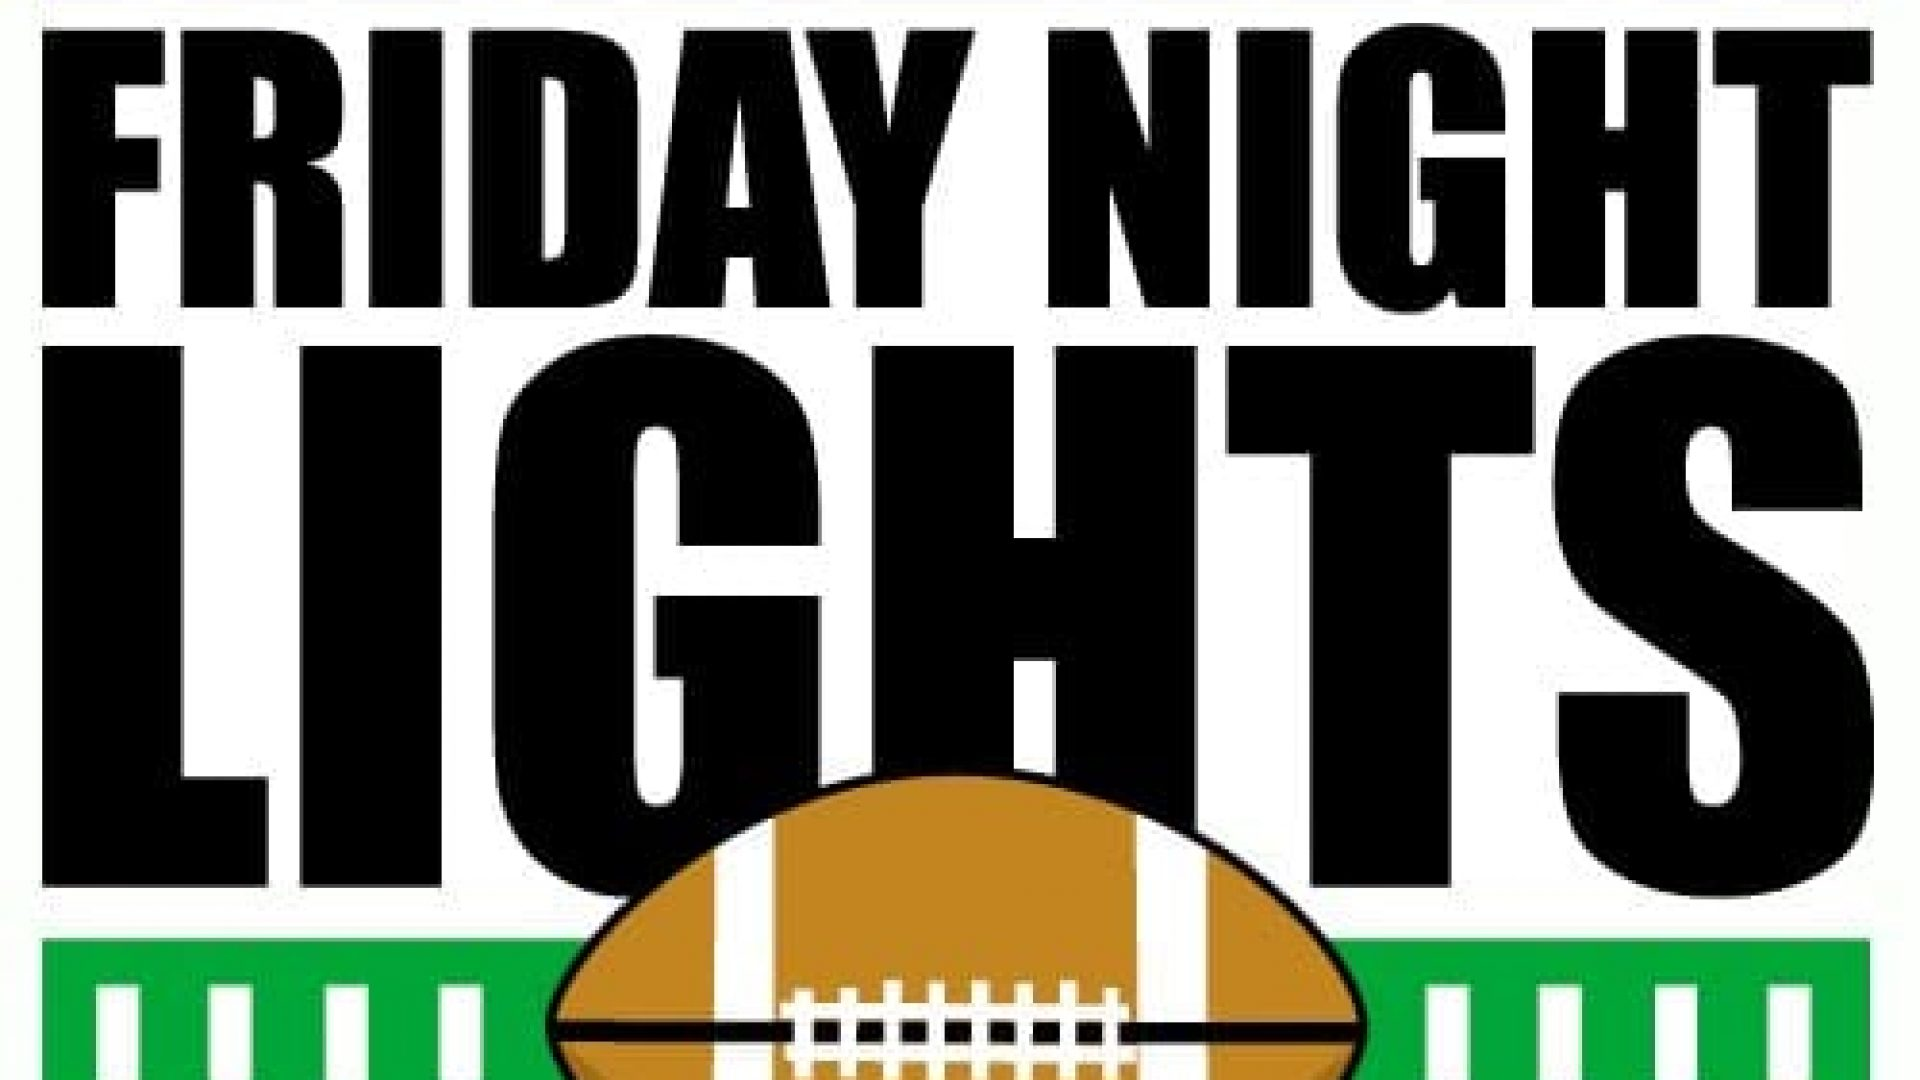 FRIDAY NIGHT LIGHTS: This week's games